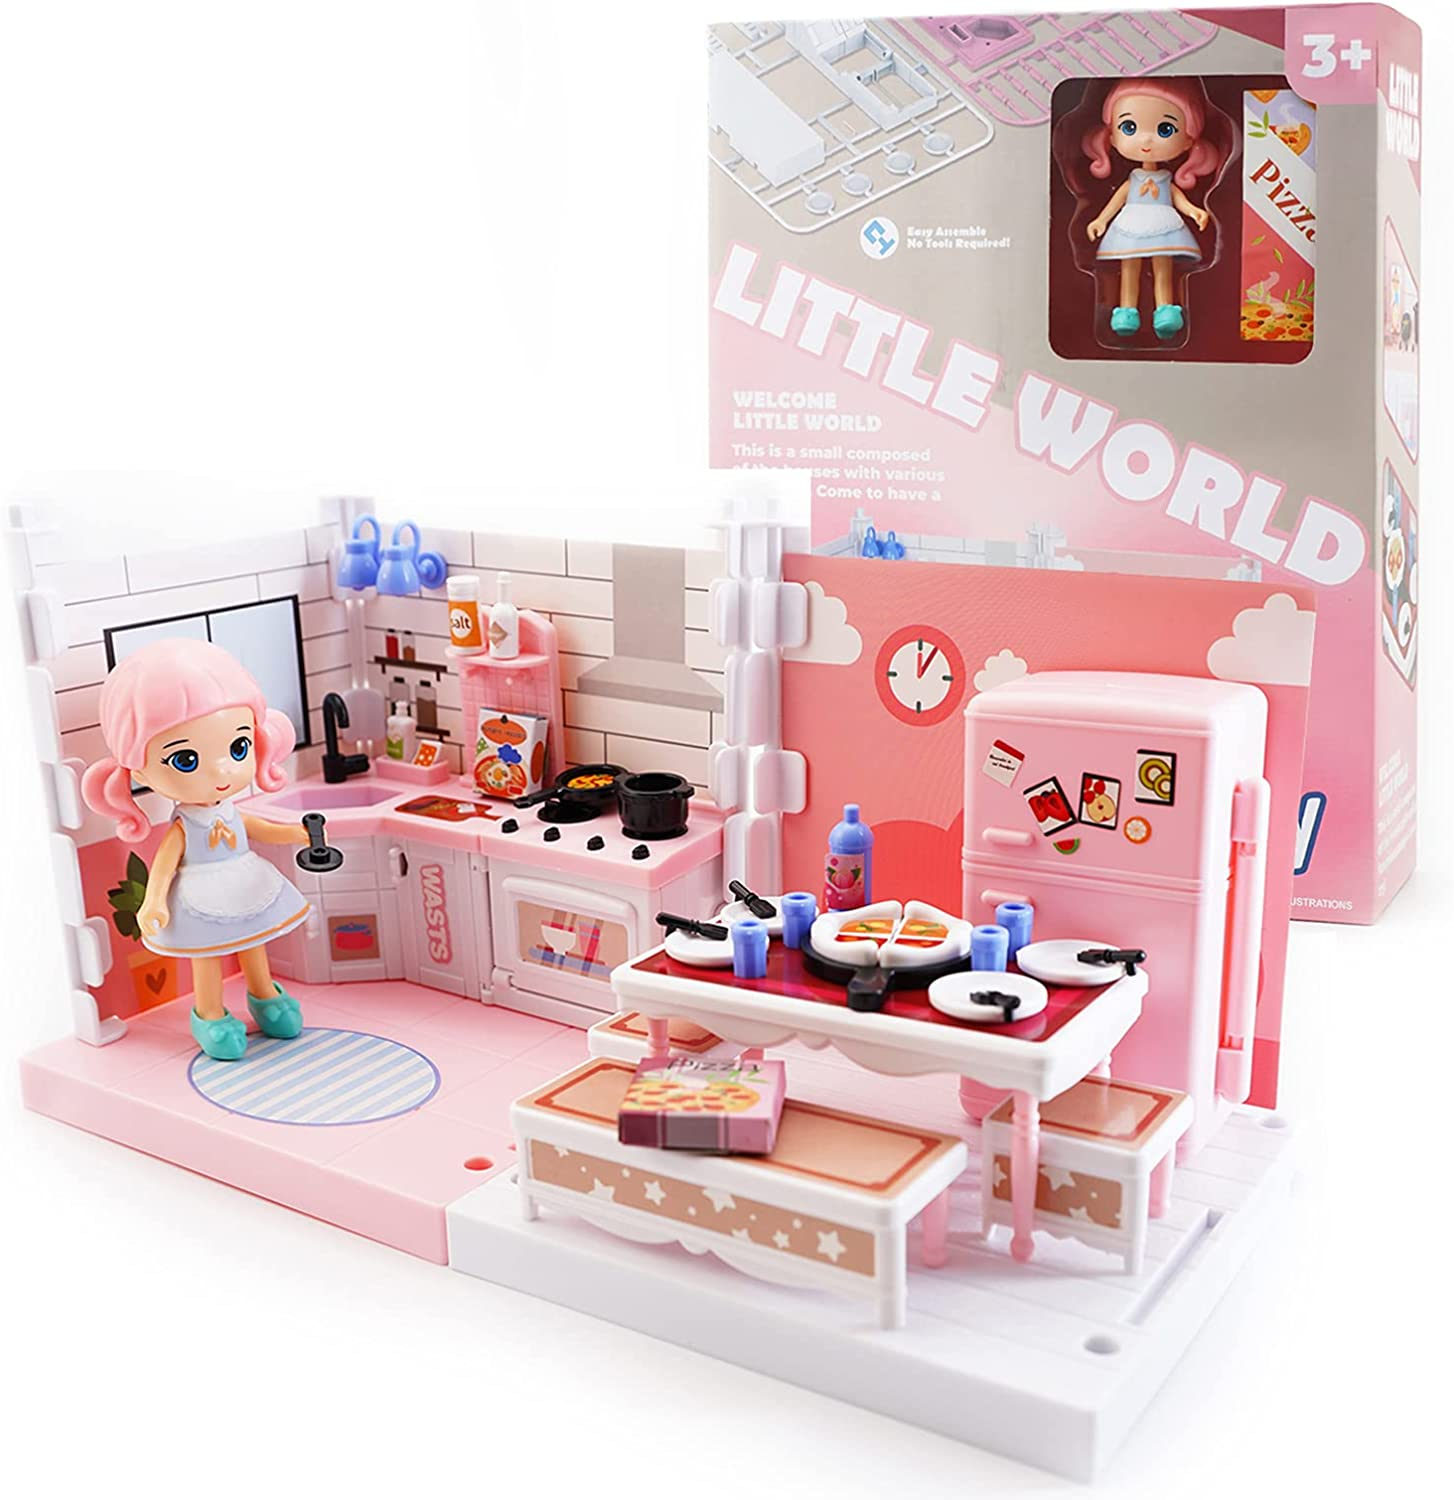 DIY Sales Miniature Dollhouse Kit Uorker Toys for Girls Do Max 80% OFF 3 Old Year